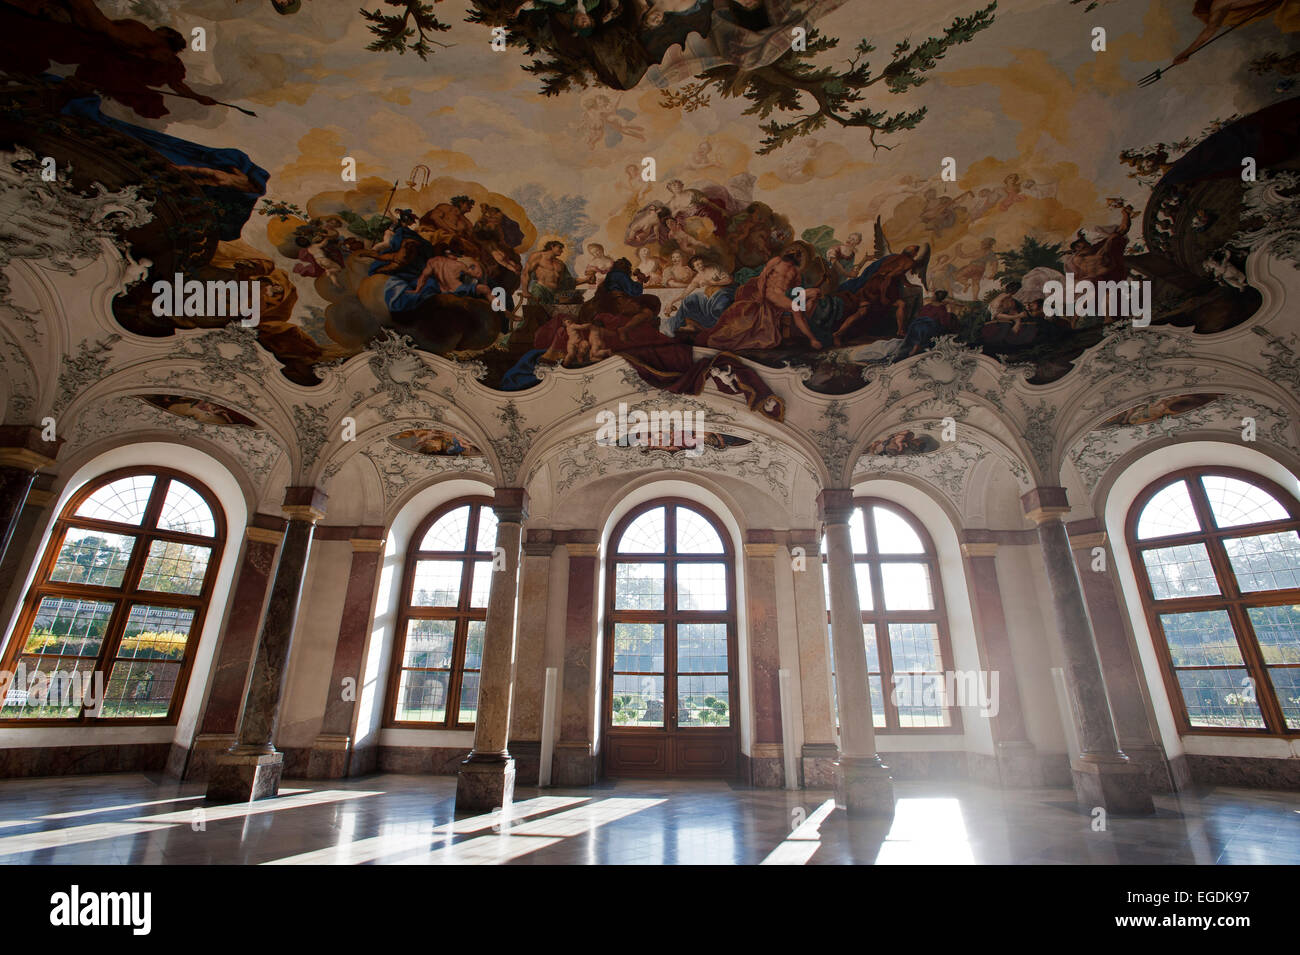 The White Hall, Wuerzburg Residence, Wuerzburg, Franconia, Bavaria, Germany - Stock Image